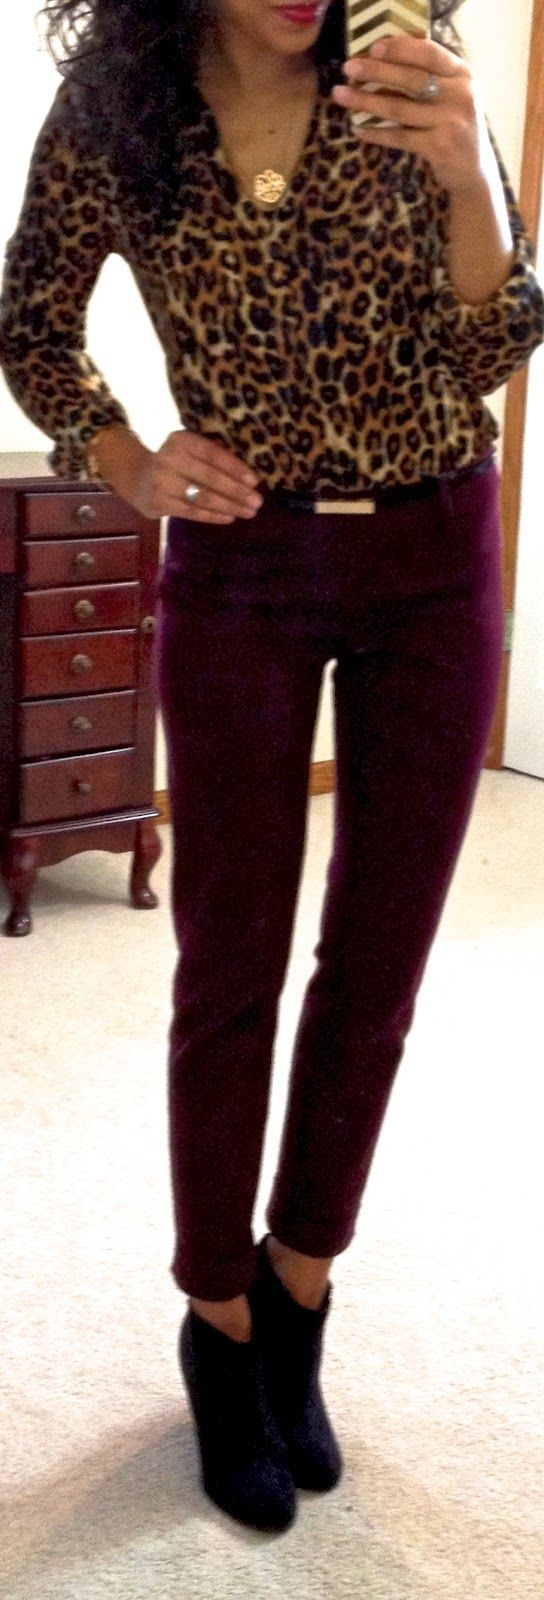 leopard print blouse, maroon pants, and ankle boots.